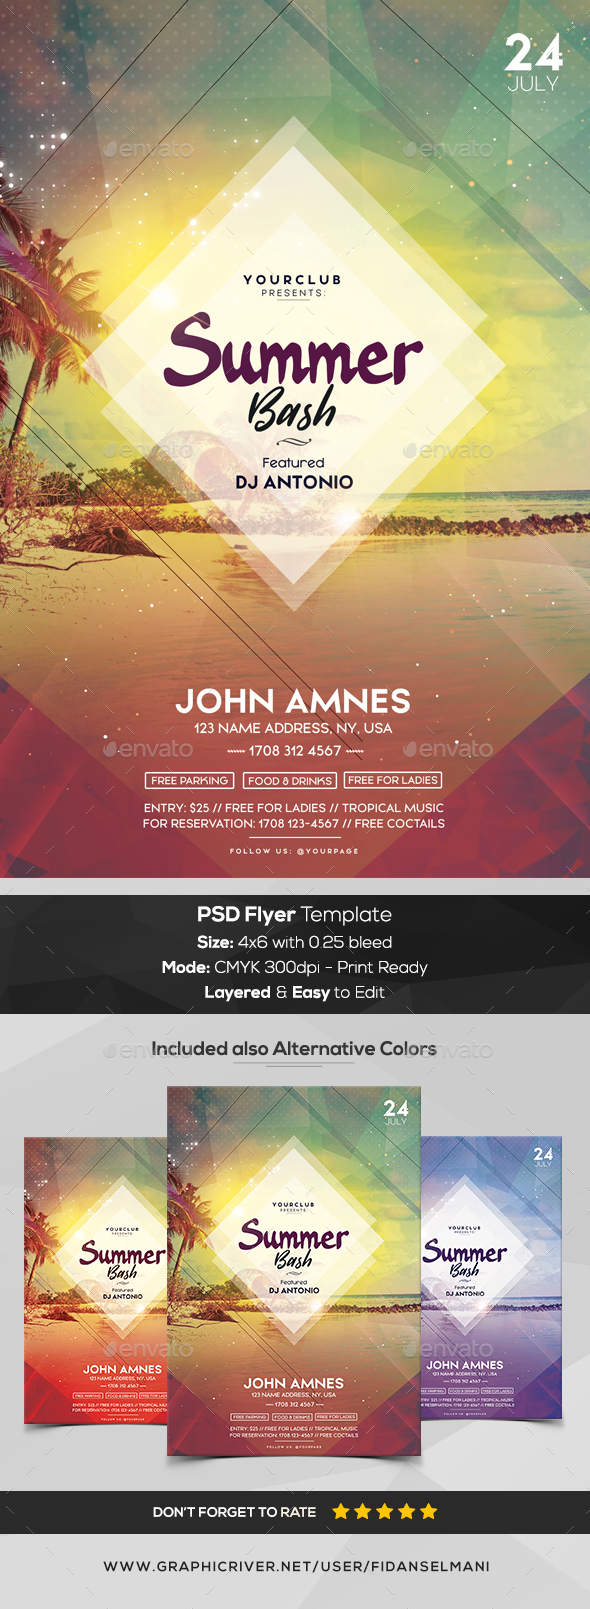 Summer Bash - PSD Flyer Template - Events Flyers